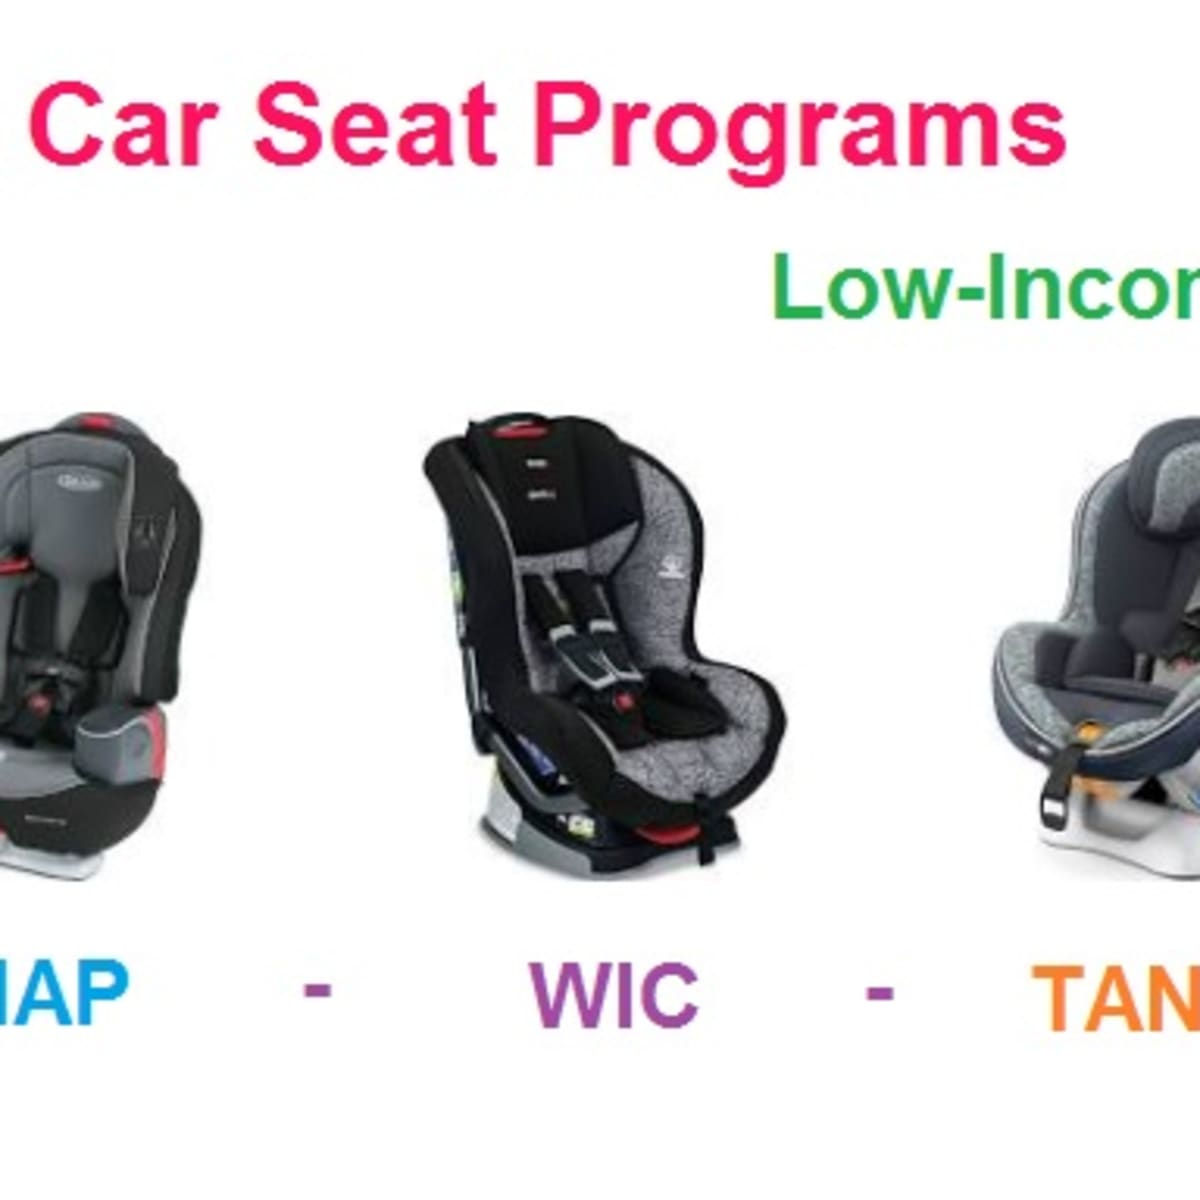 How To Get A Free Child Car Seat If You, Does Masshealth Give Free Car Seats